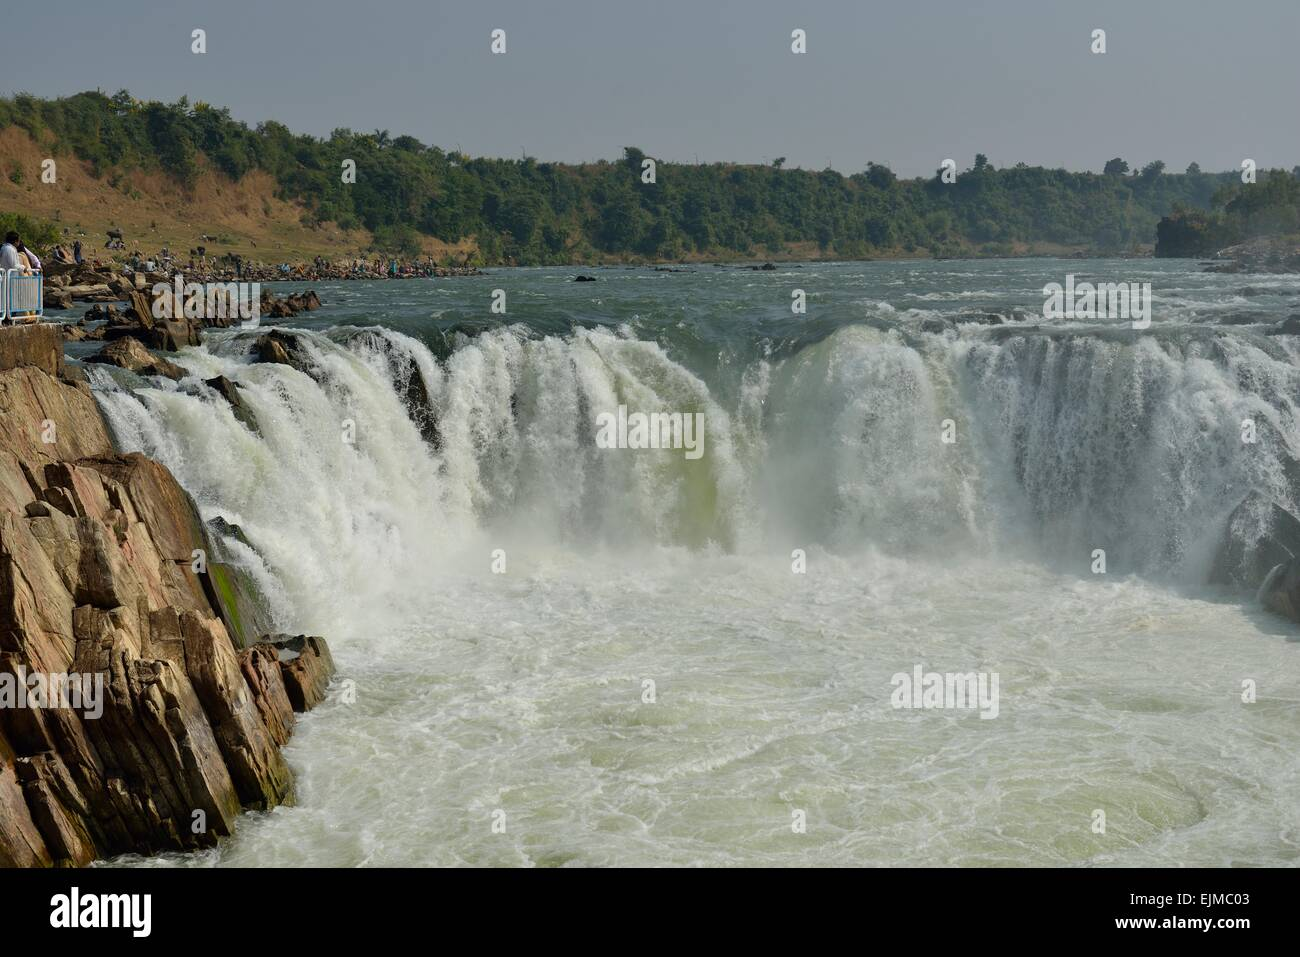 narmada river The narmada, the largest west flowing river of the peninsula, rises near  amarkantak range of mountains in madhya pradesh it is the fifth largest river in  the.